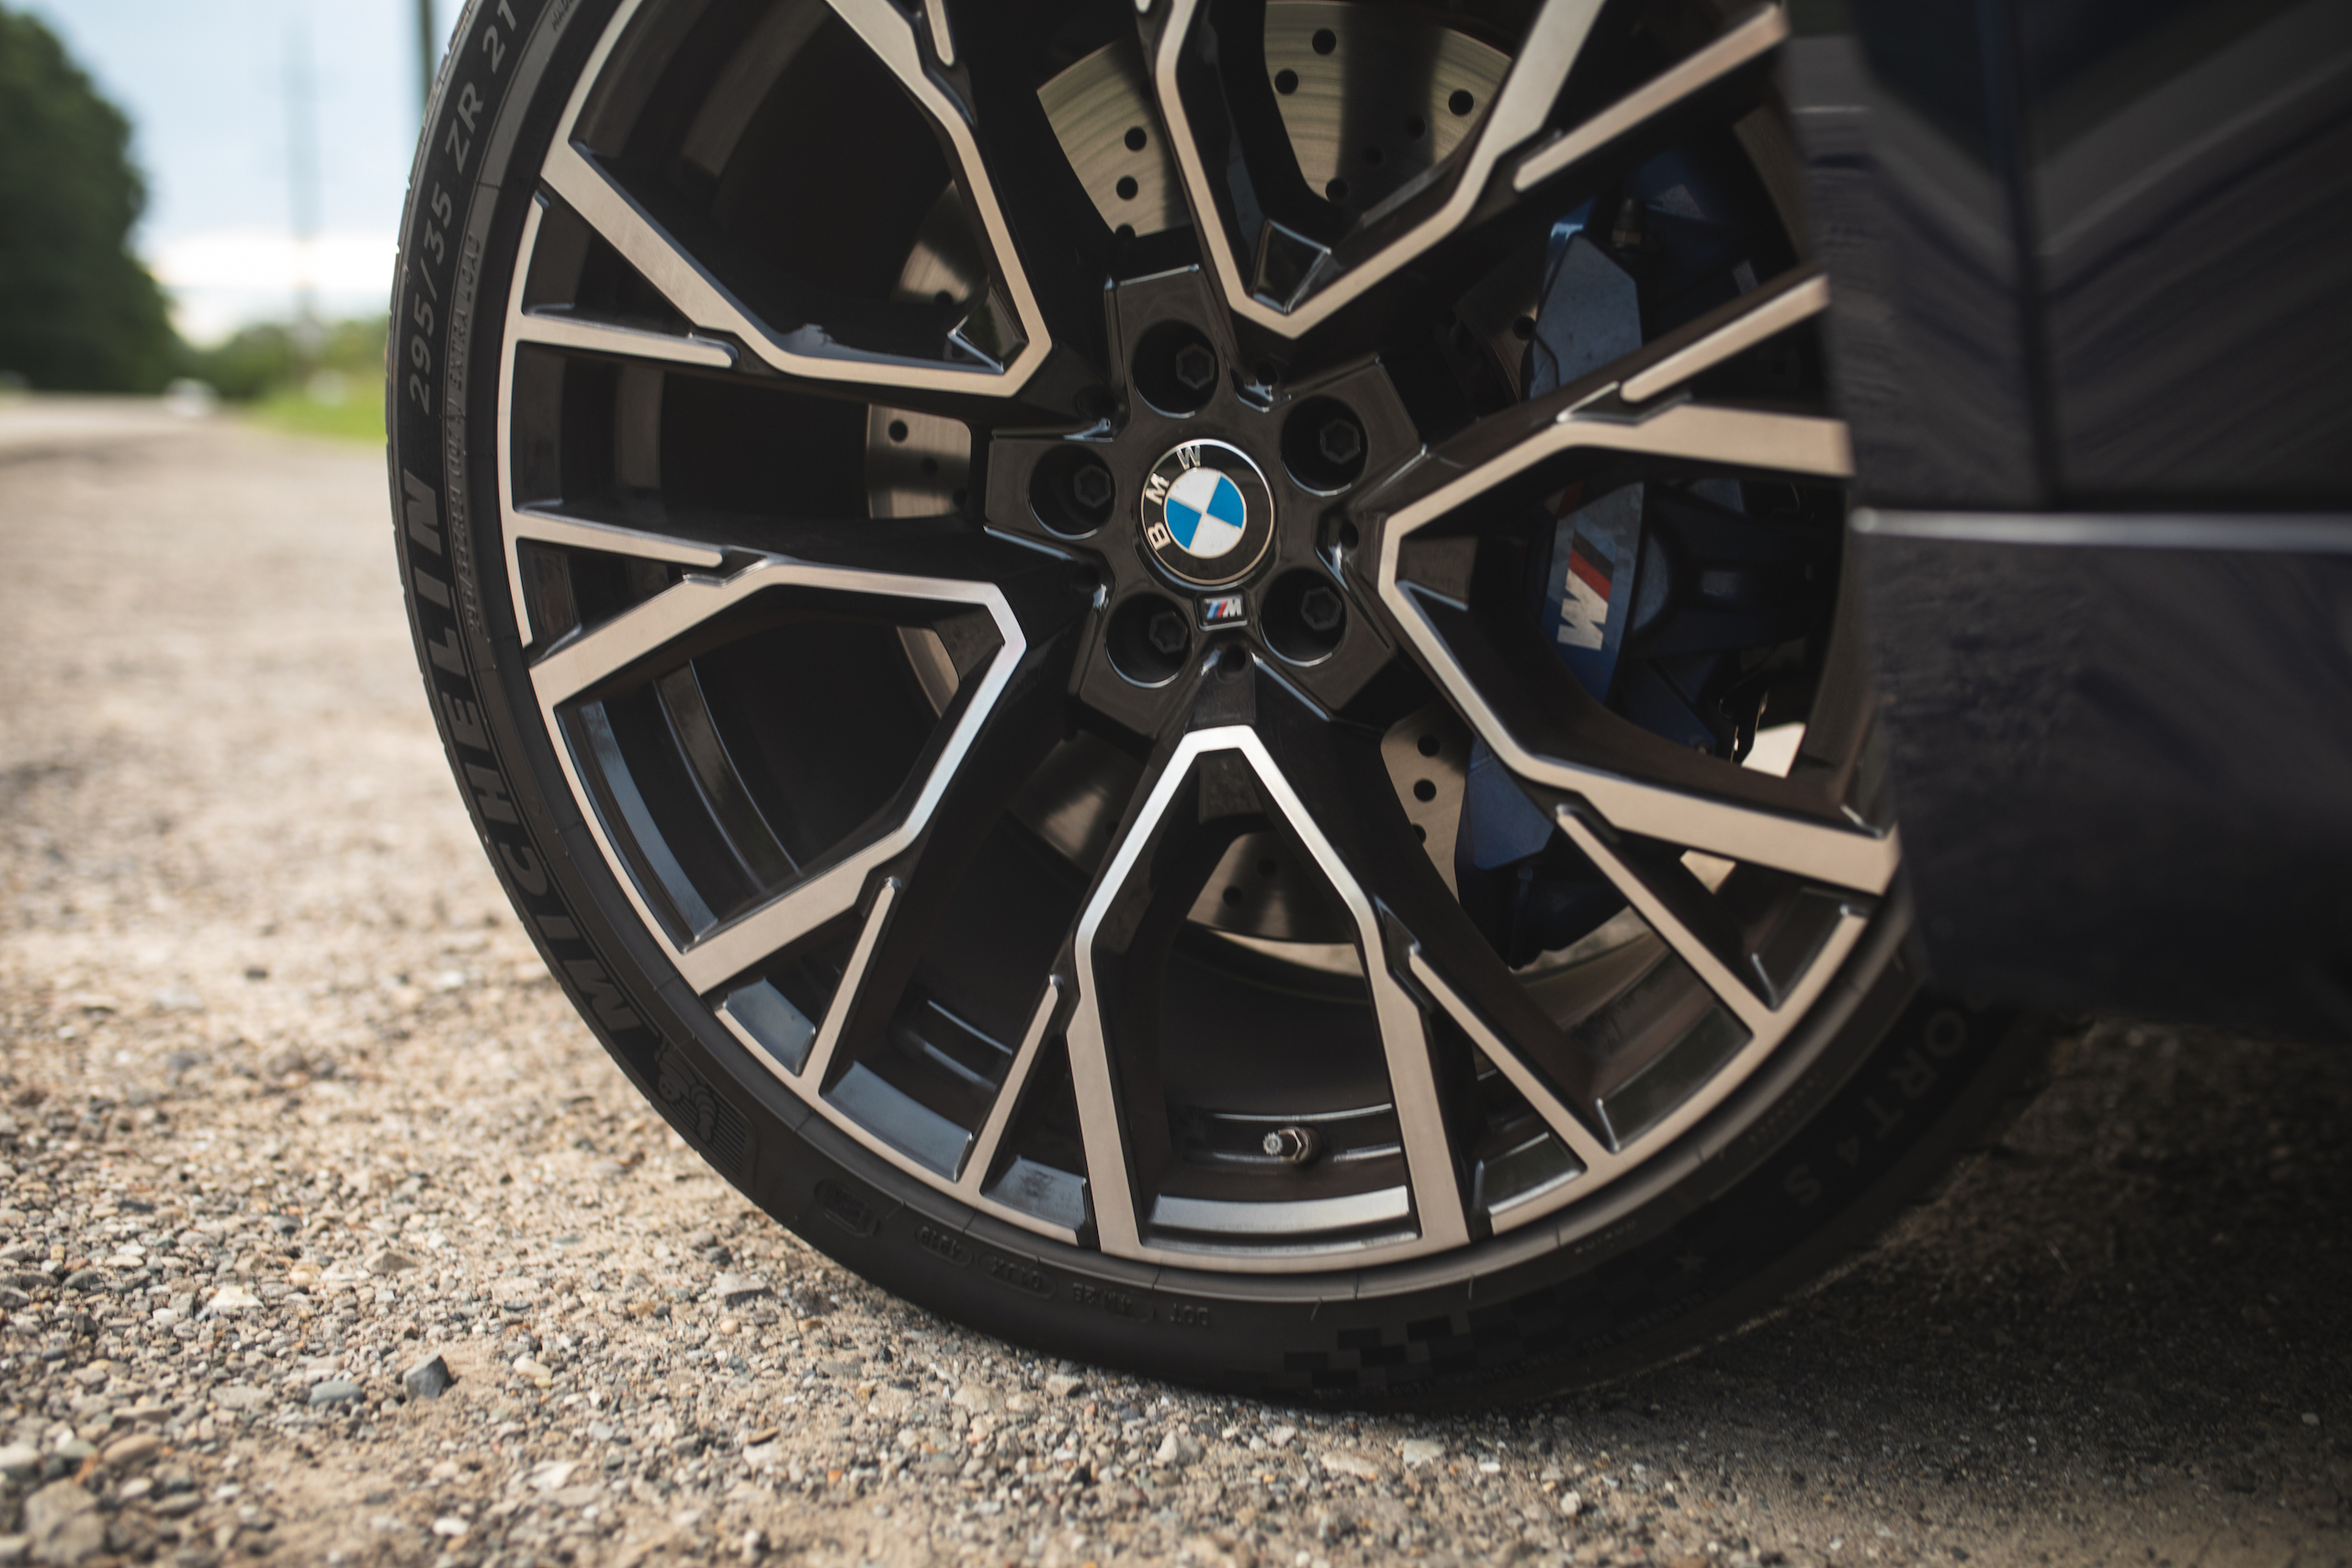 bmw x5m wheel and tire detail